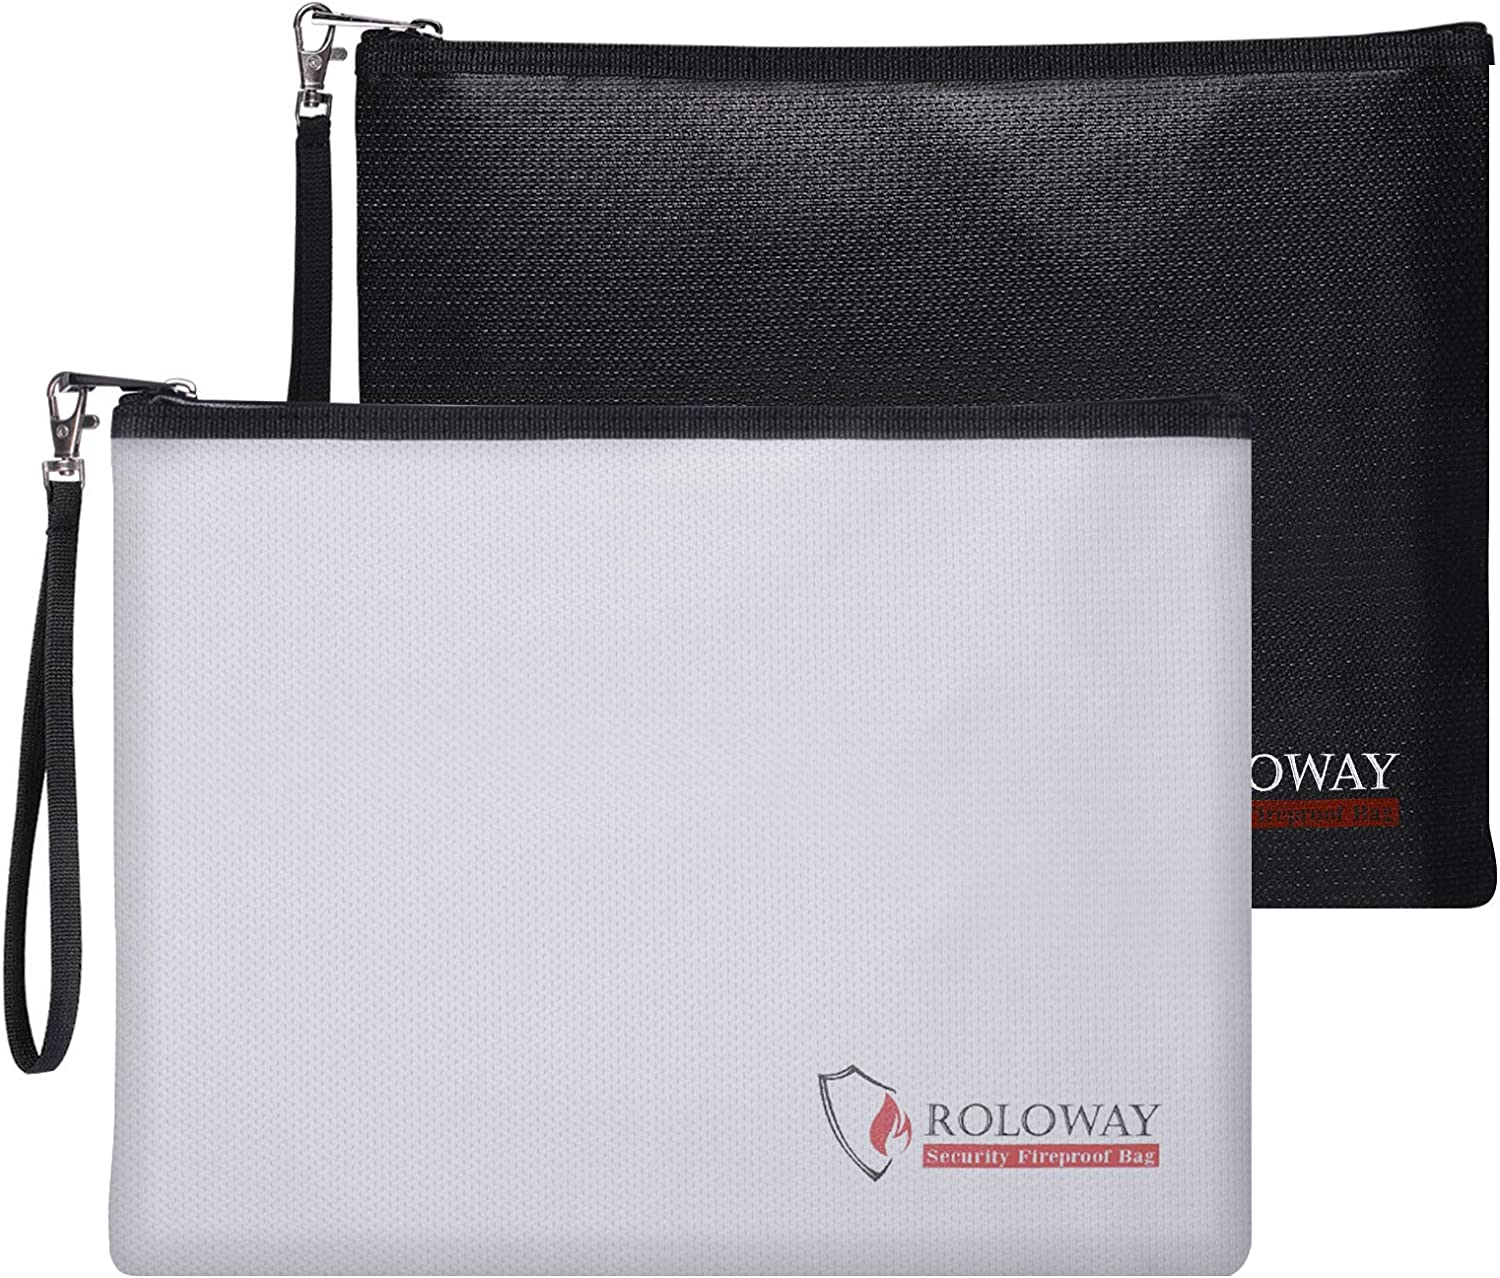 Fireproof Document Bag 13.4 Branded goods x 9.8 inches Miami Mall Money